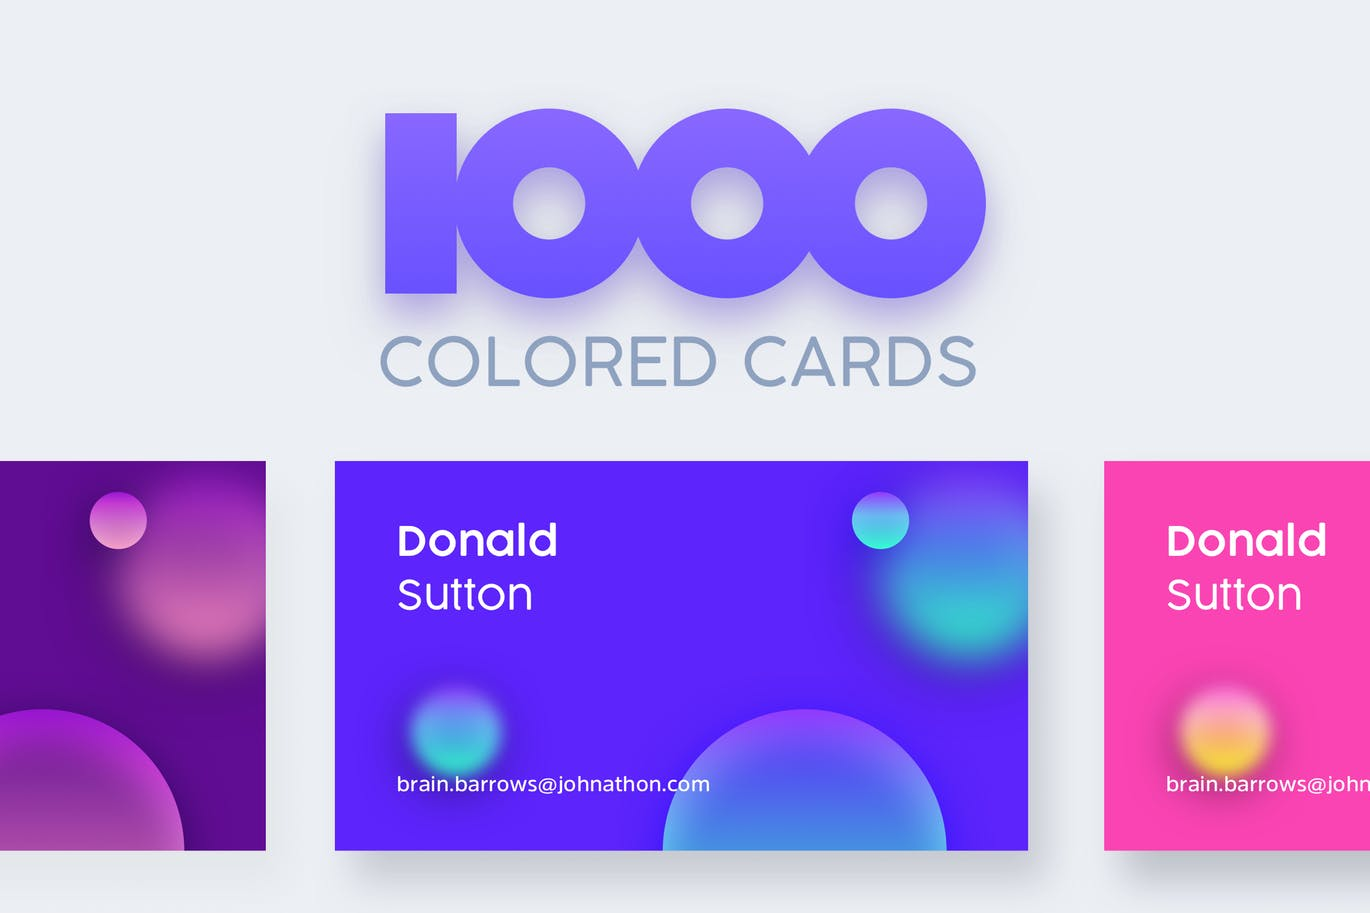 1000-colored-business-cards